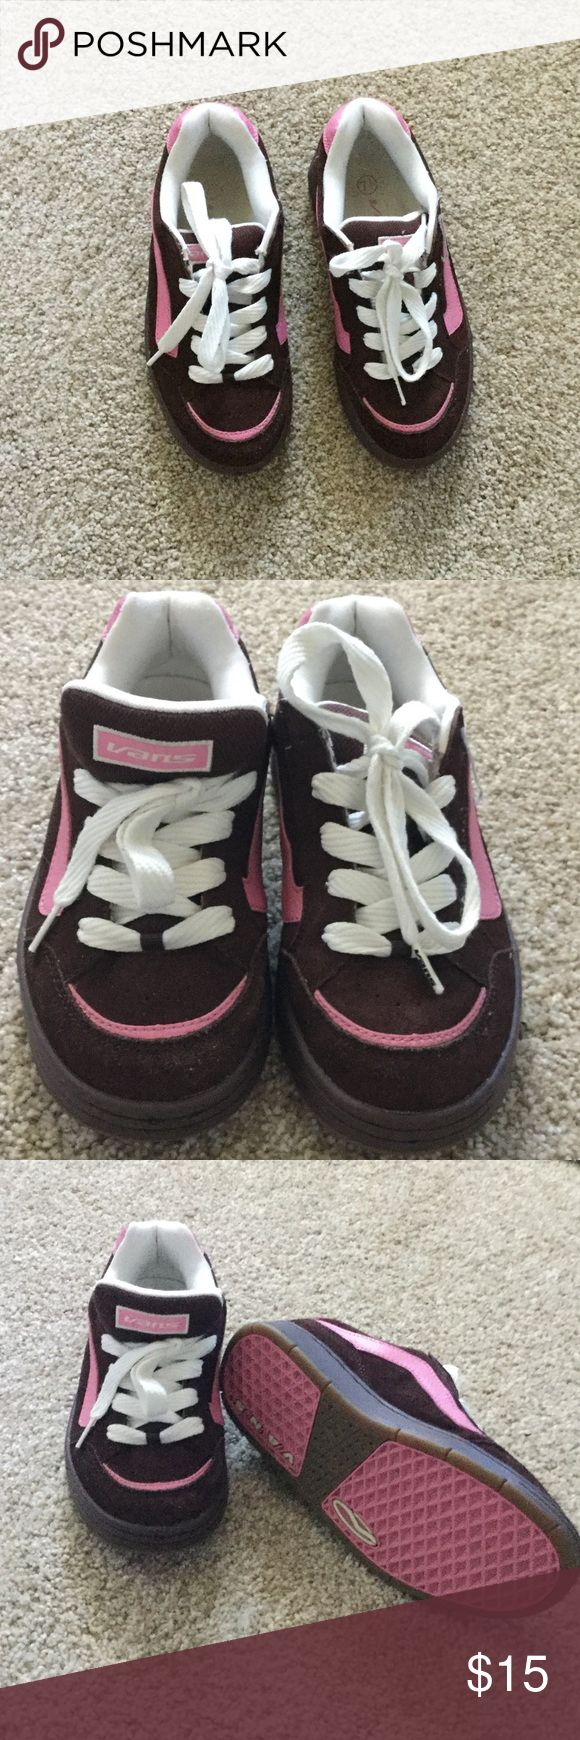 🎁 Pre-Black Friday Sale 🎁 Vans shoes Super cute pink and brown Vans, they are a 7 1/2 but fit more like a7. In perfect condition Vans Shoes Sneakers